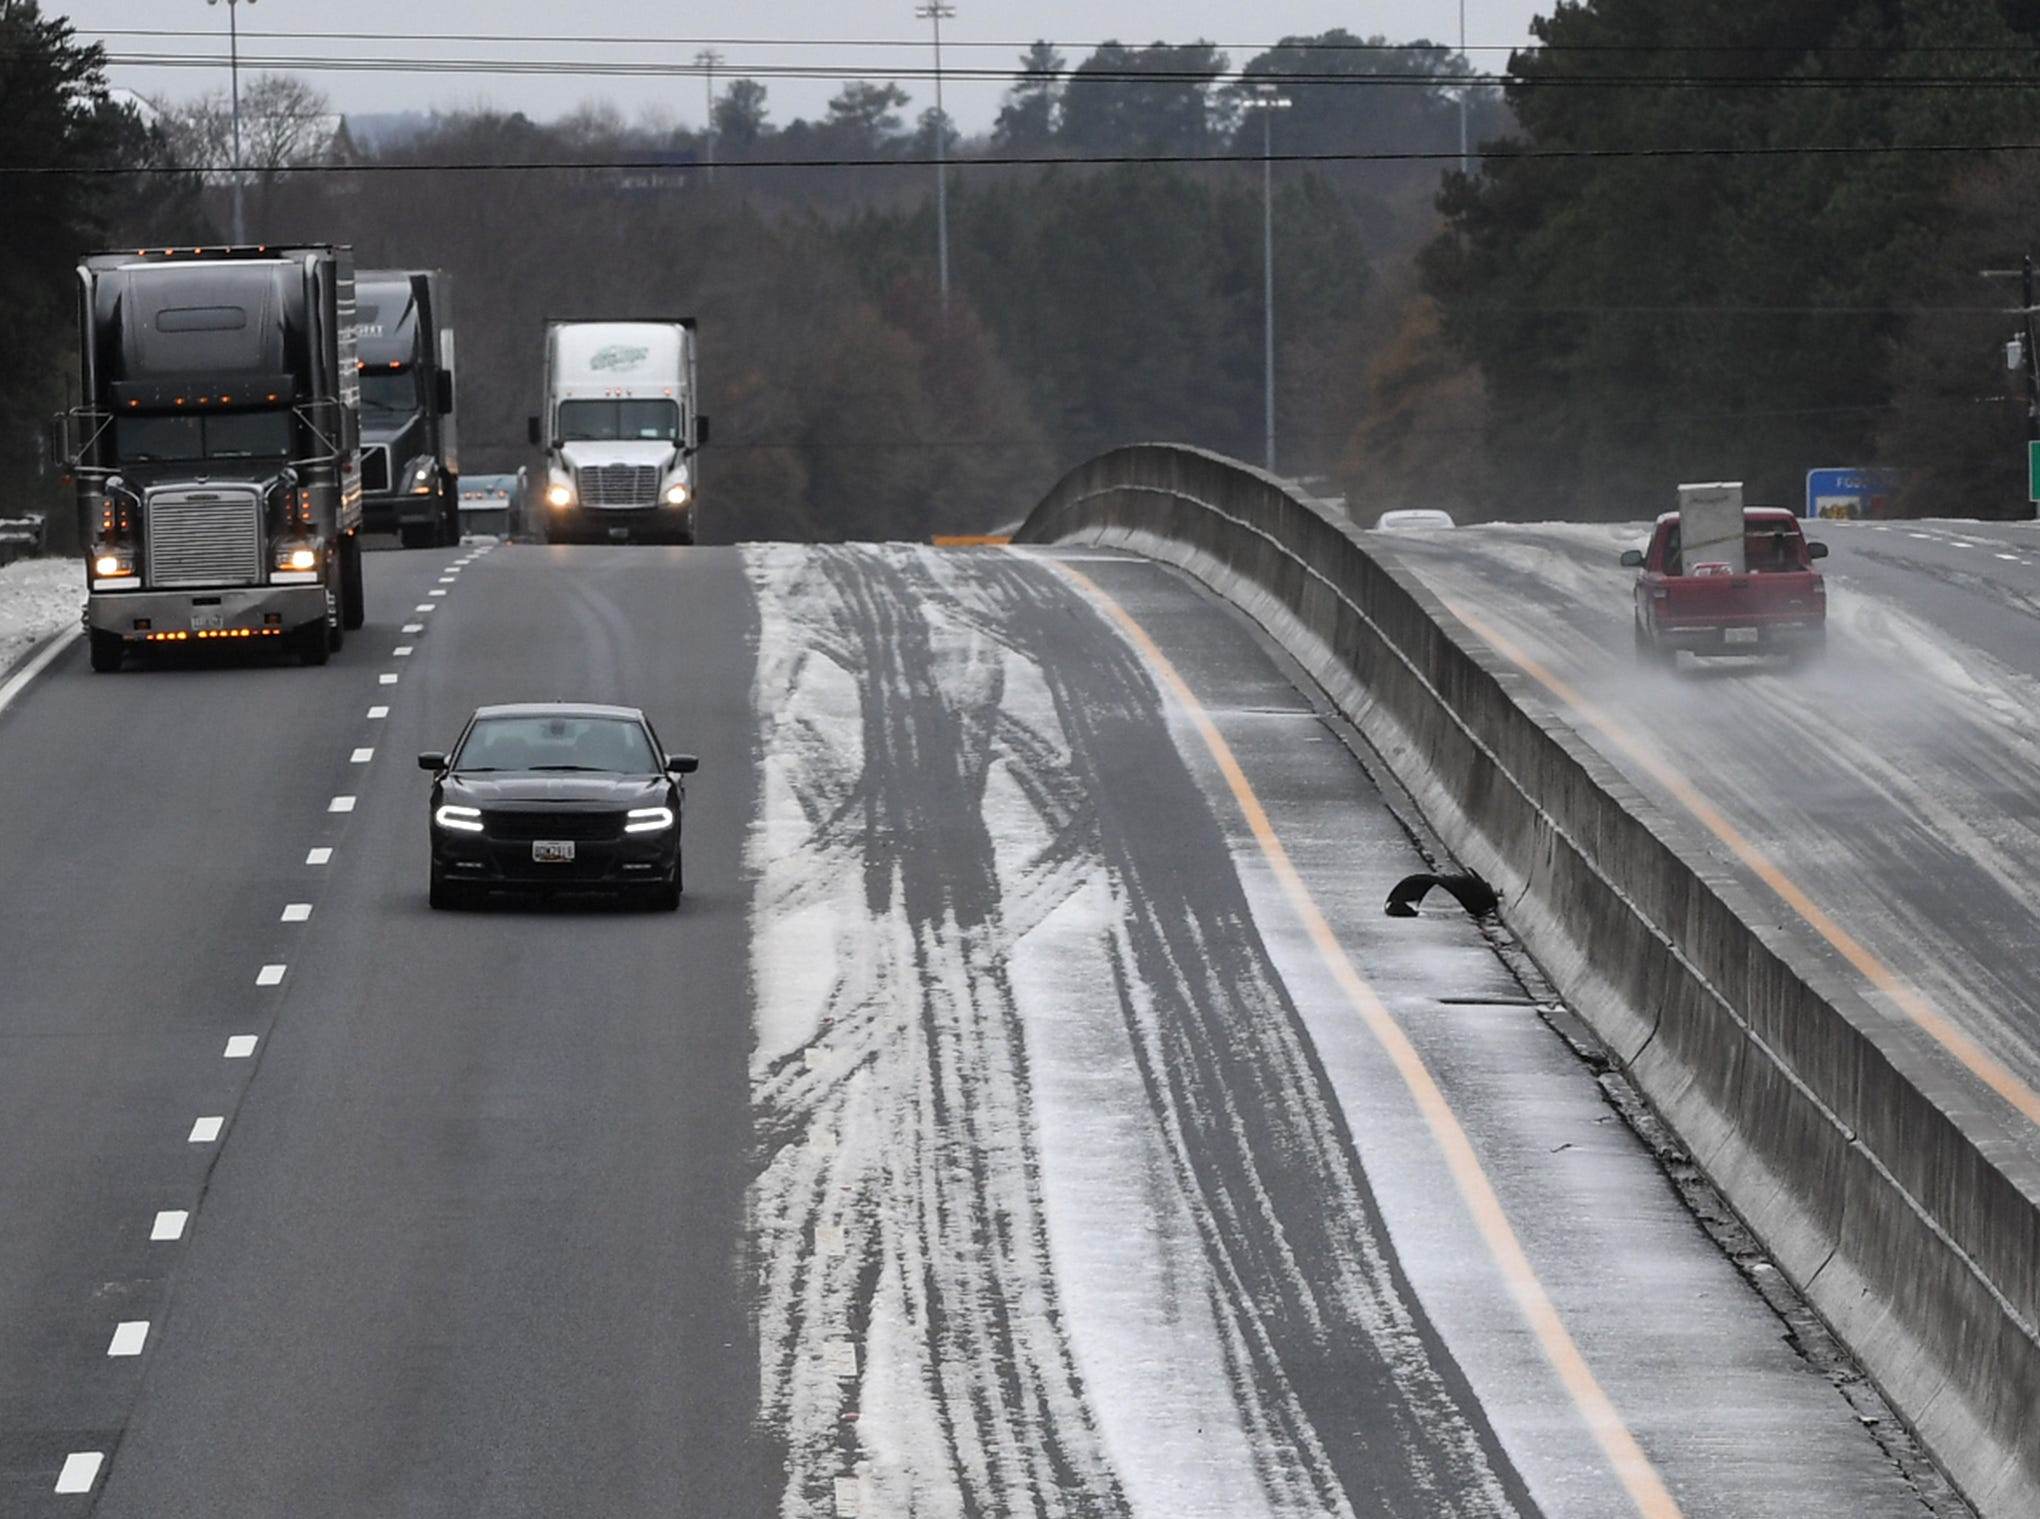 Cars drive through a mix of snow and sleet on I-85 near Highway 178 in Anderson County Sunday, December 9, 2018.